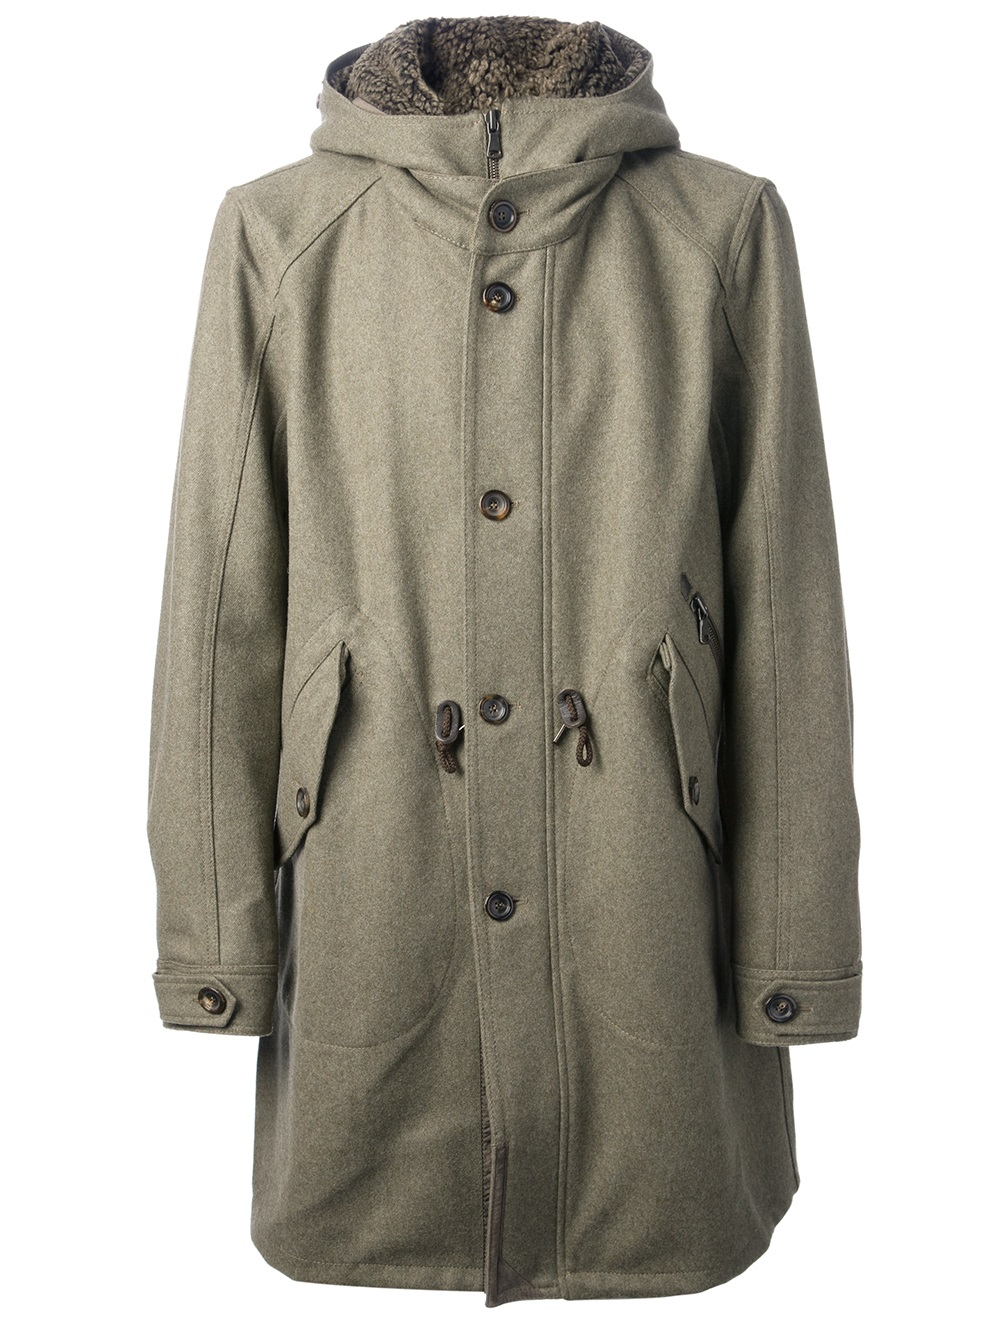 coats christian single men Find quality apparel manufacturers, suppliers, exporters, importers, buyers, wholesalers, products and trade leads from our award-winning international trade site.